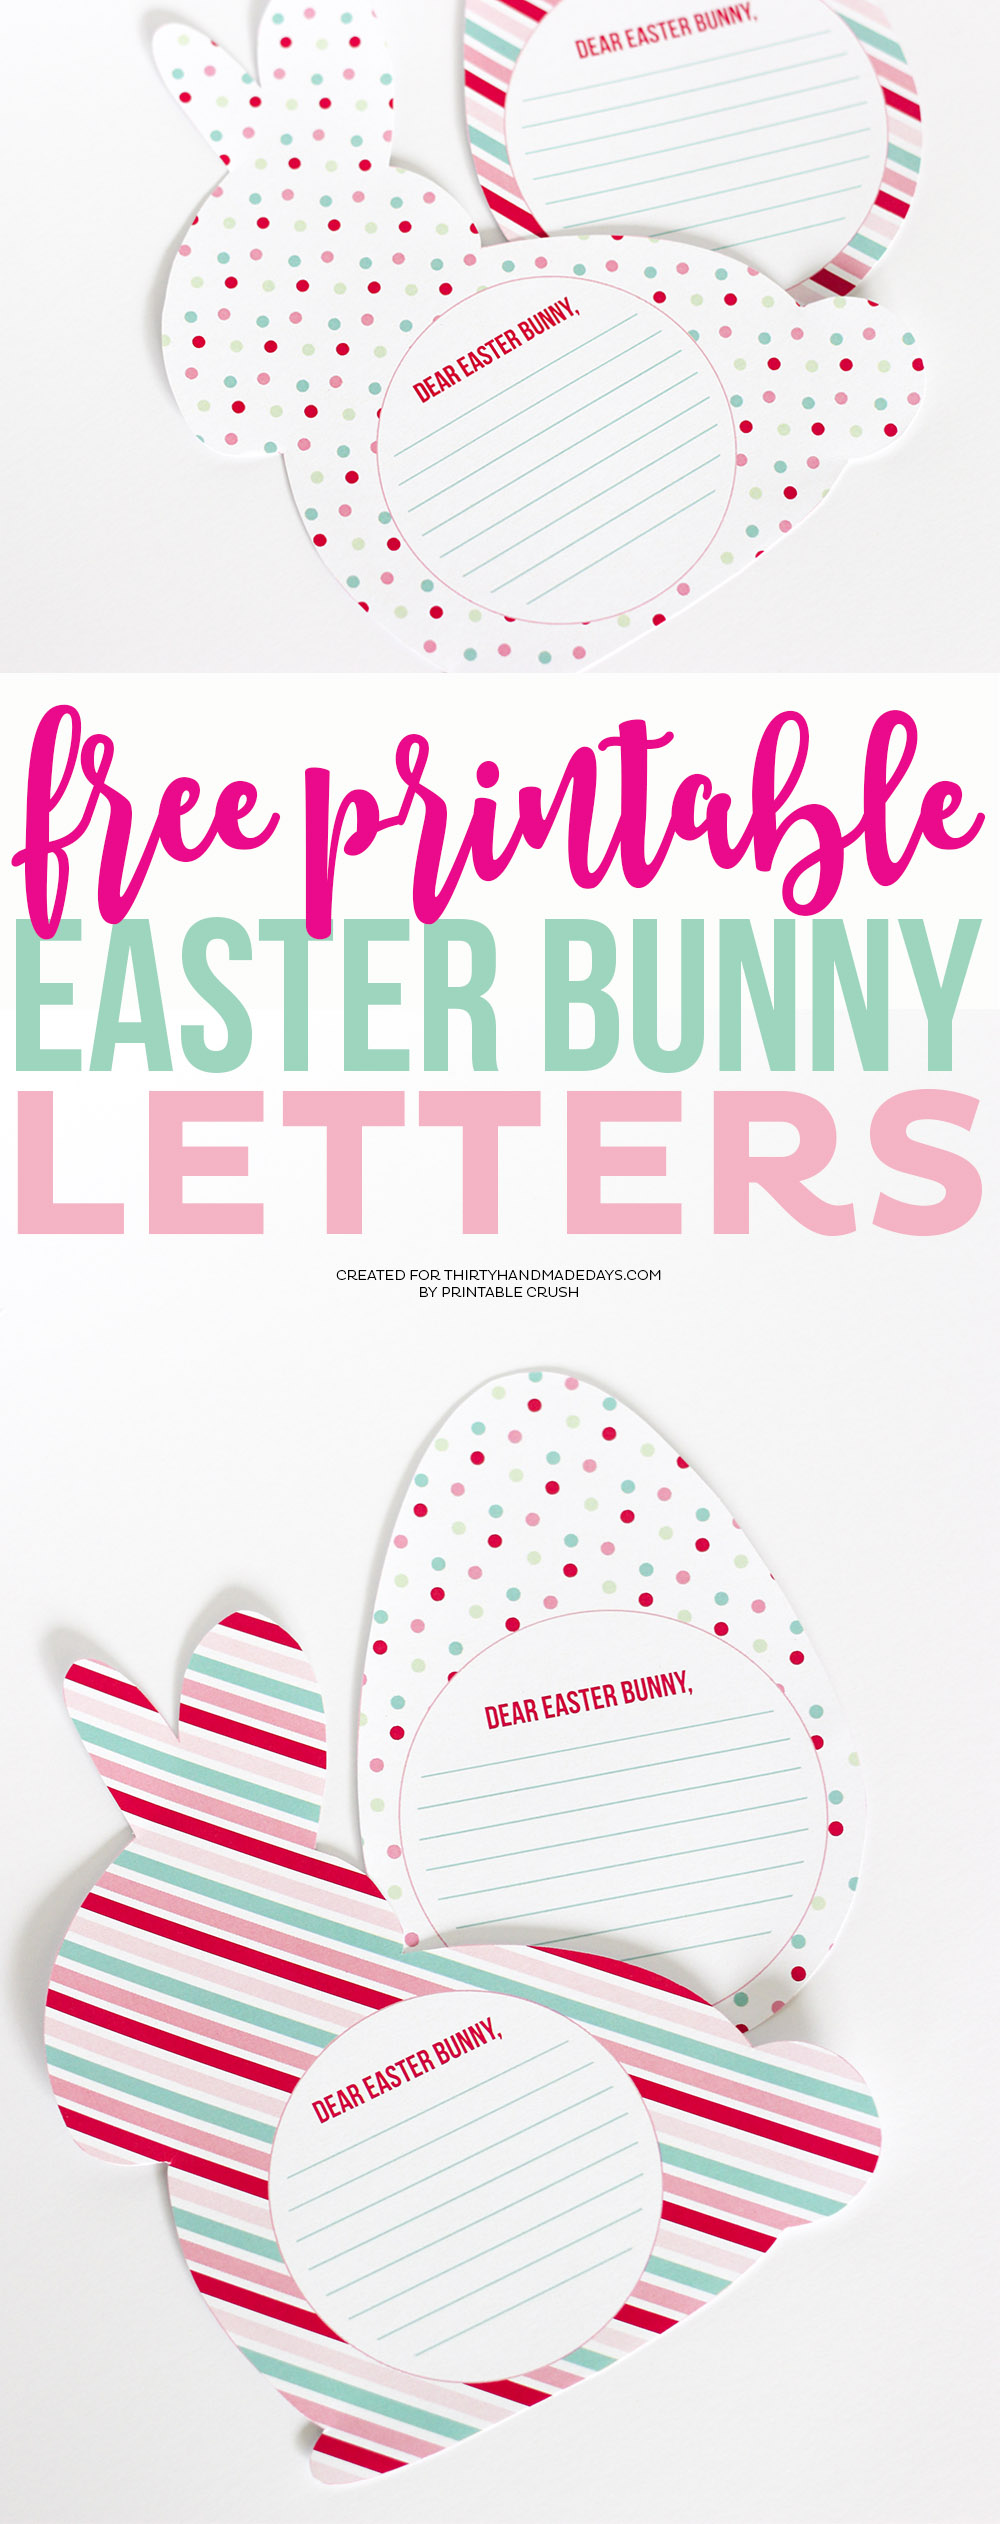 photograph about Letter From Easter Bunny Printable named Absolutely free Printable Easter Bunny Letters - 30 Home made Times